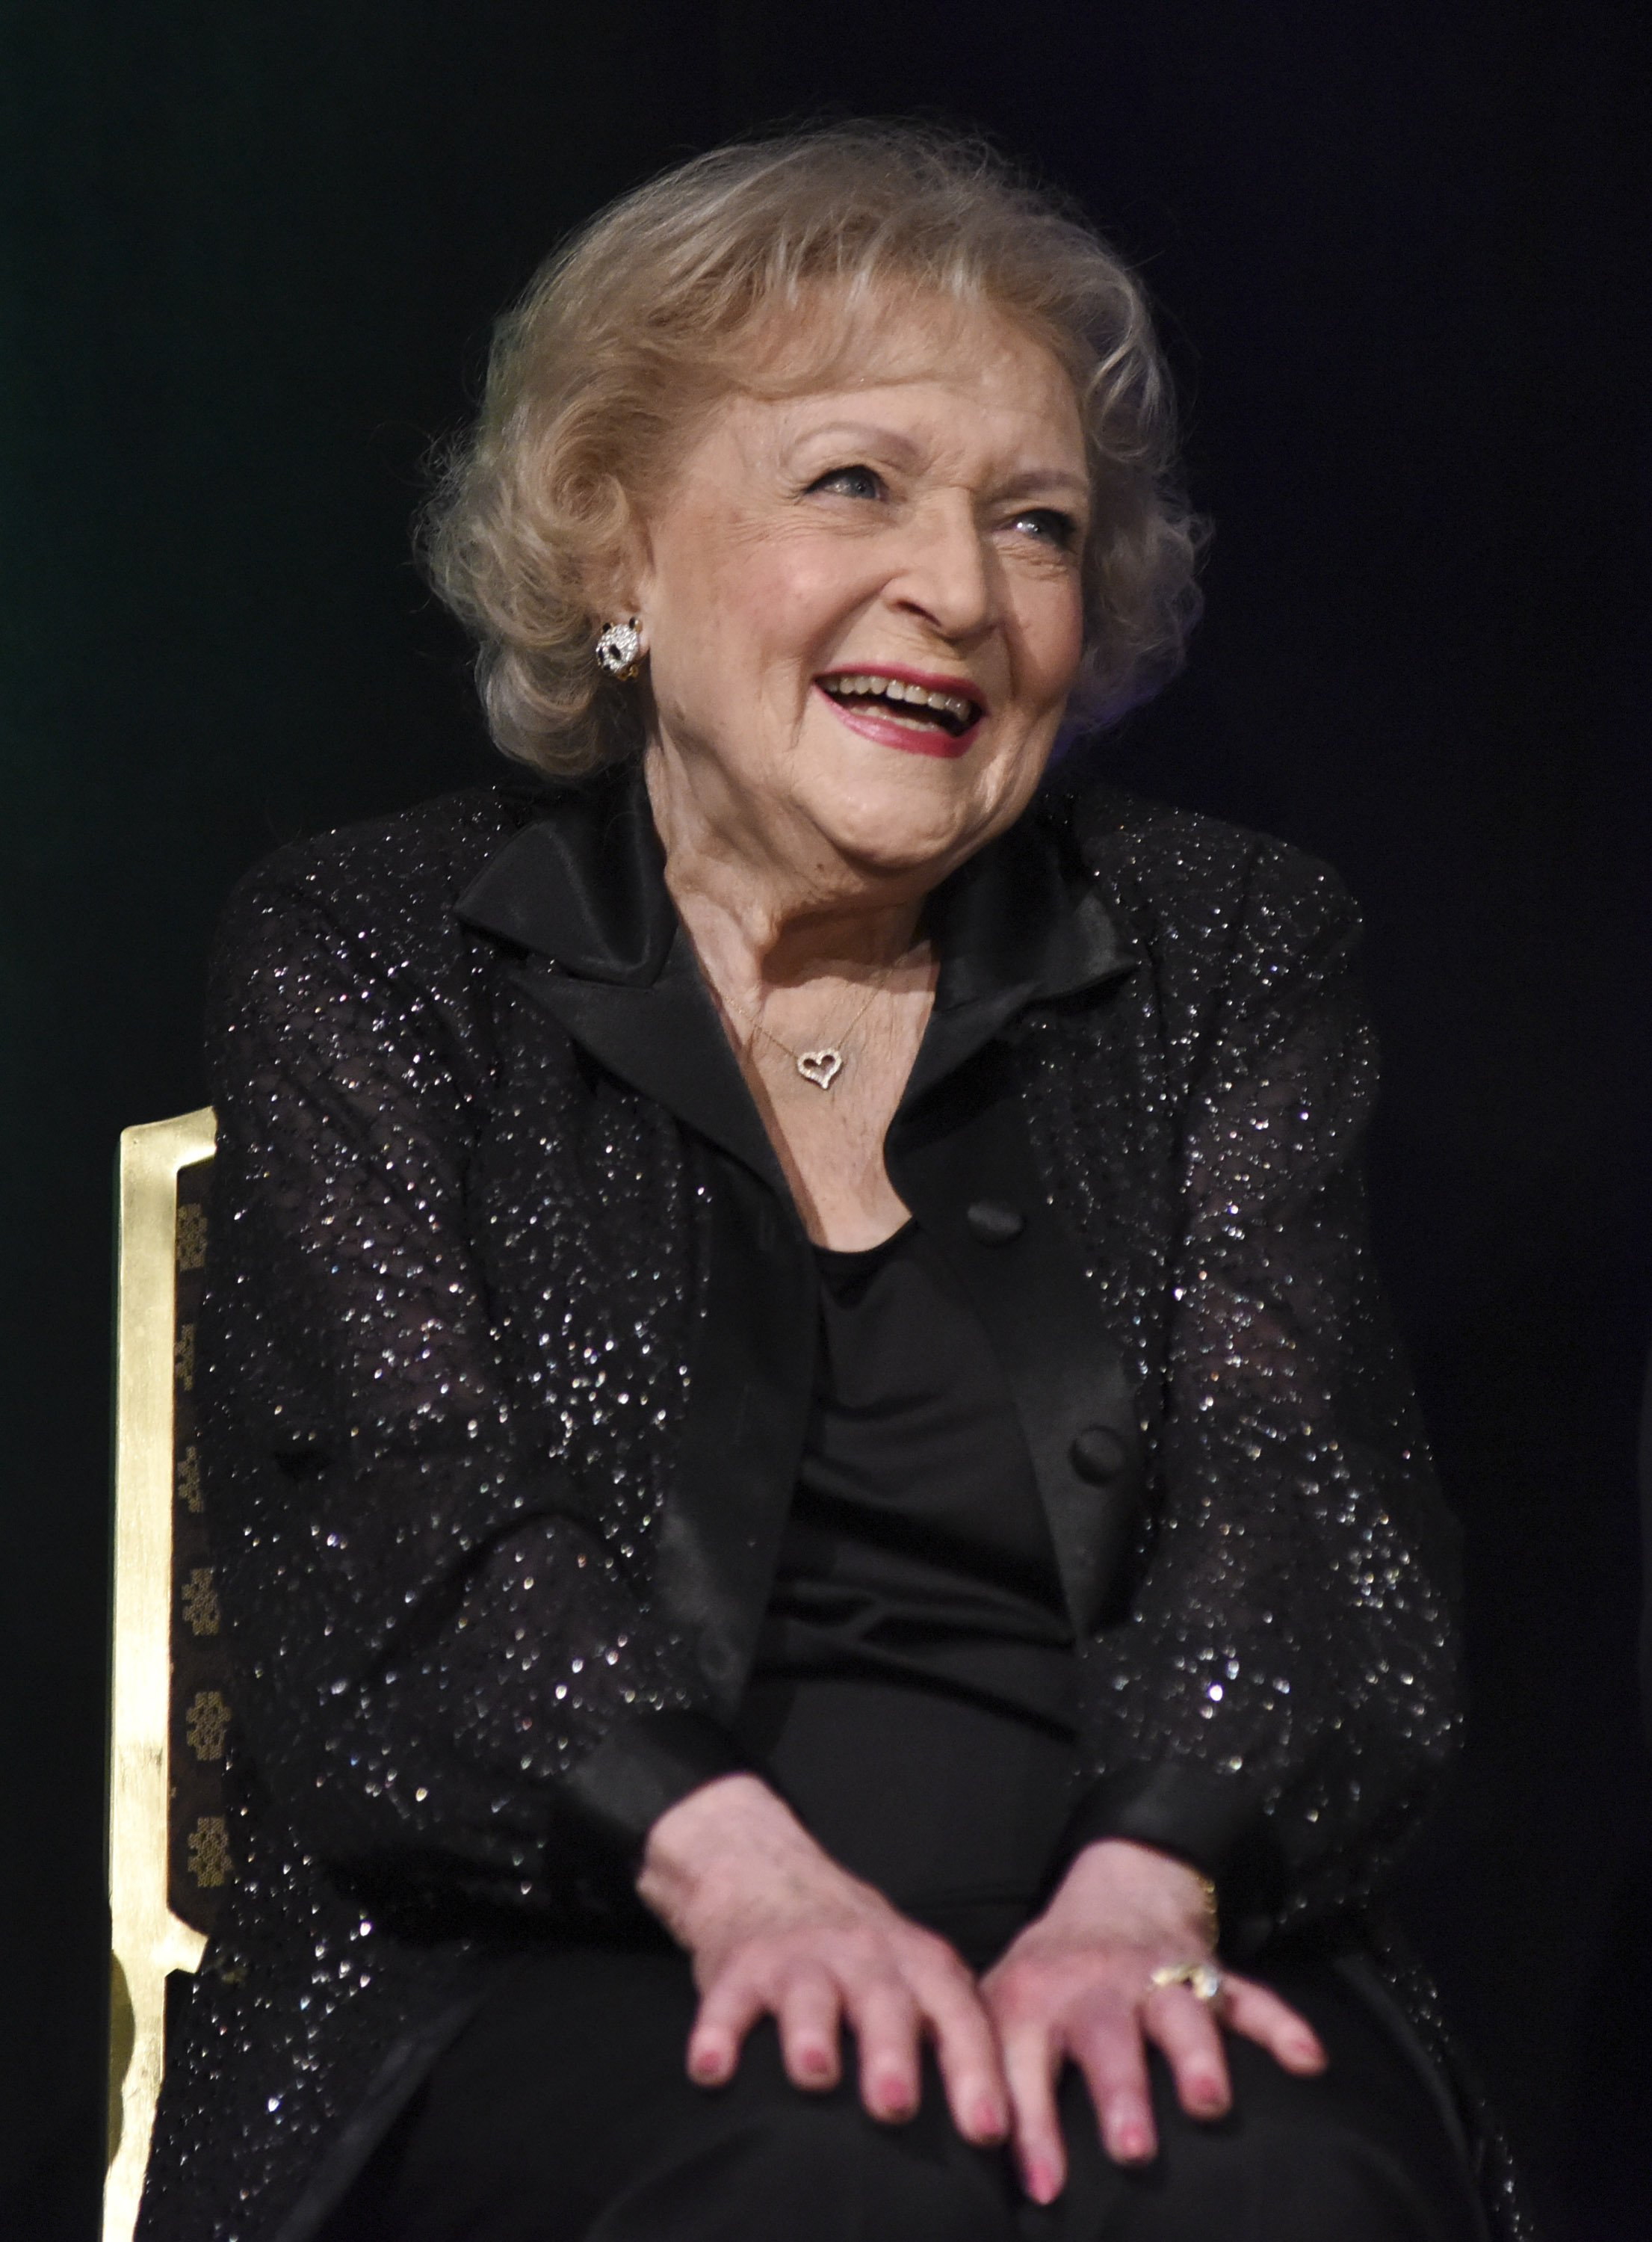 Betty White attends the TMA 2015 Heller Awards in Century City, California on May 28, 2015 | Photo: Getty Images